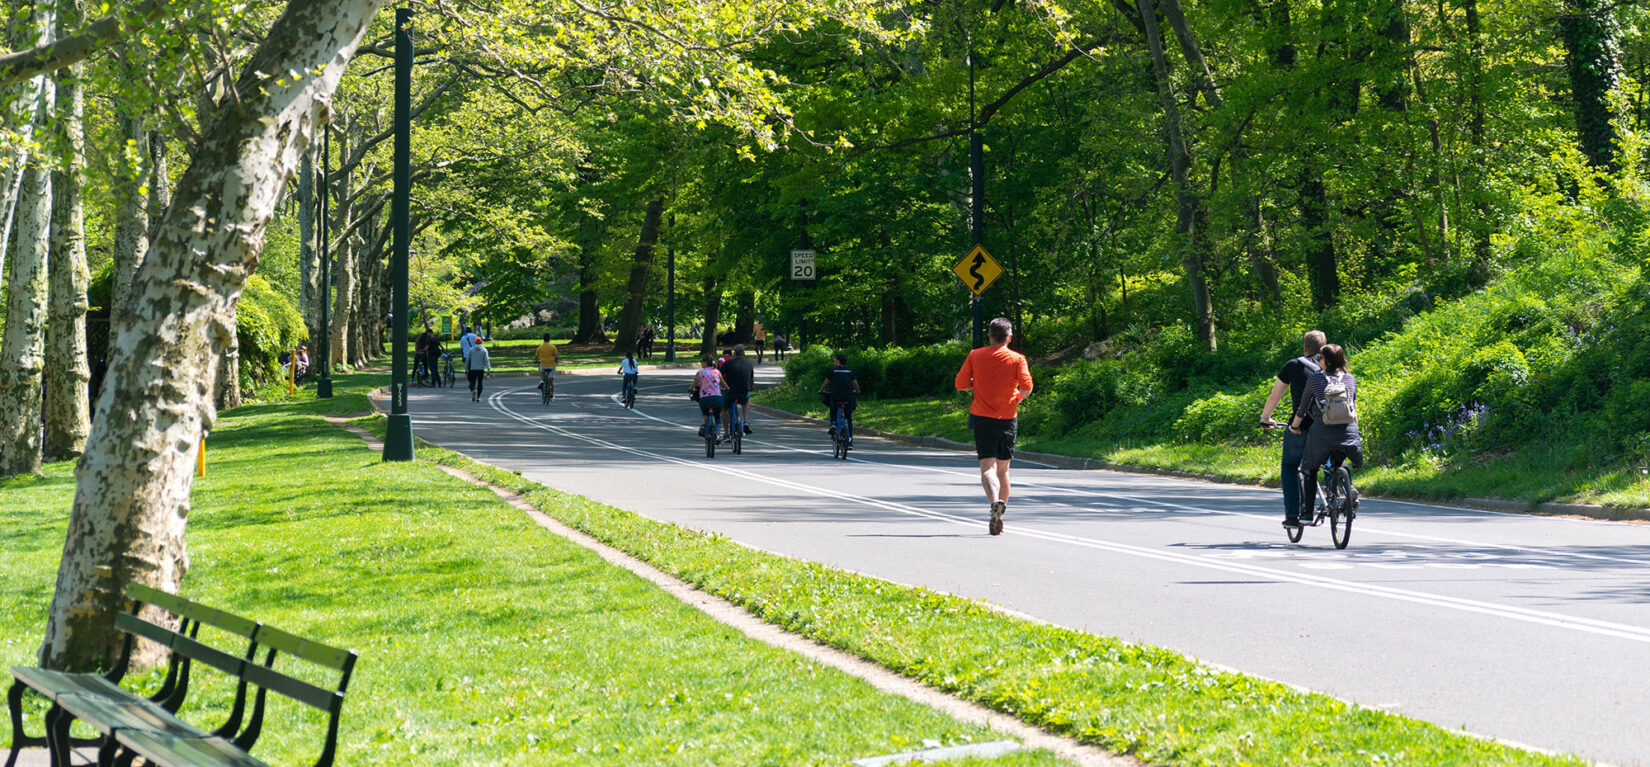 Joggers and bicyclists exercise on the roadway in summer